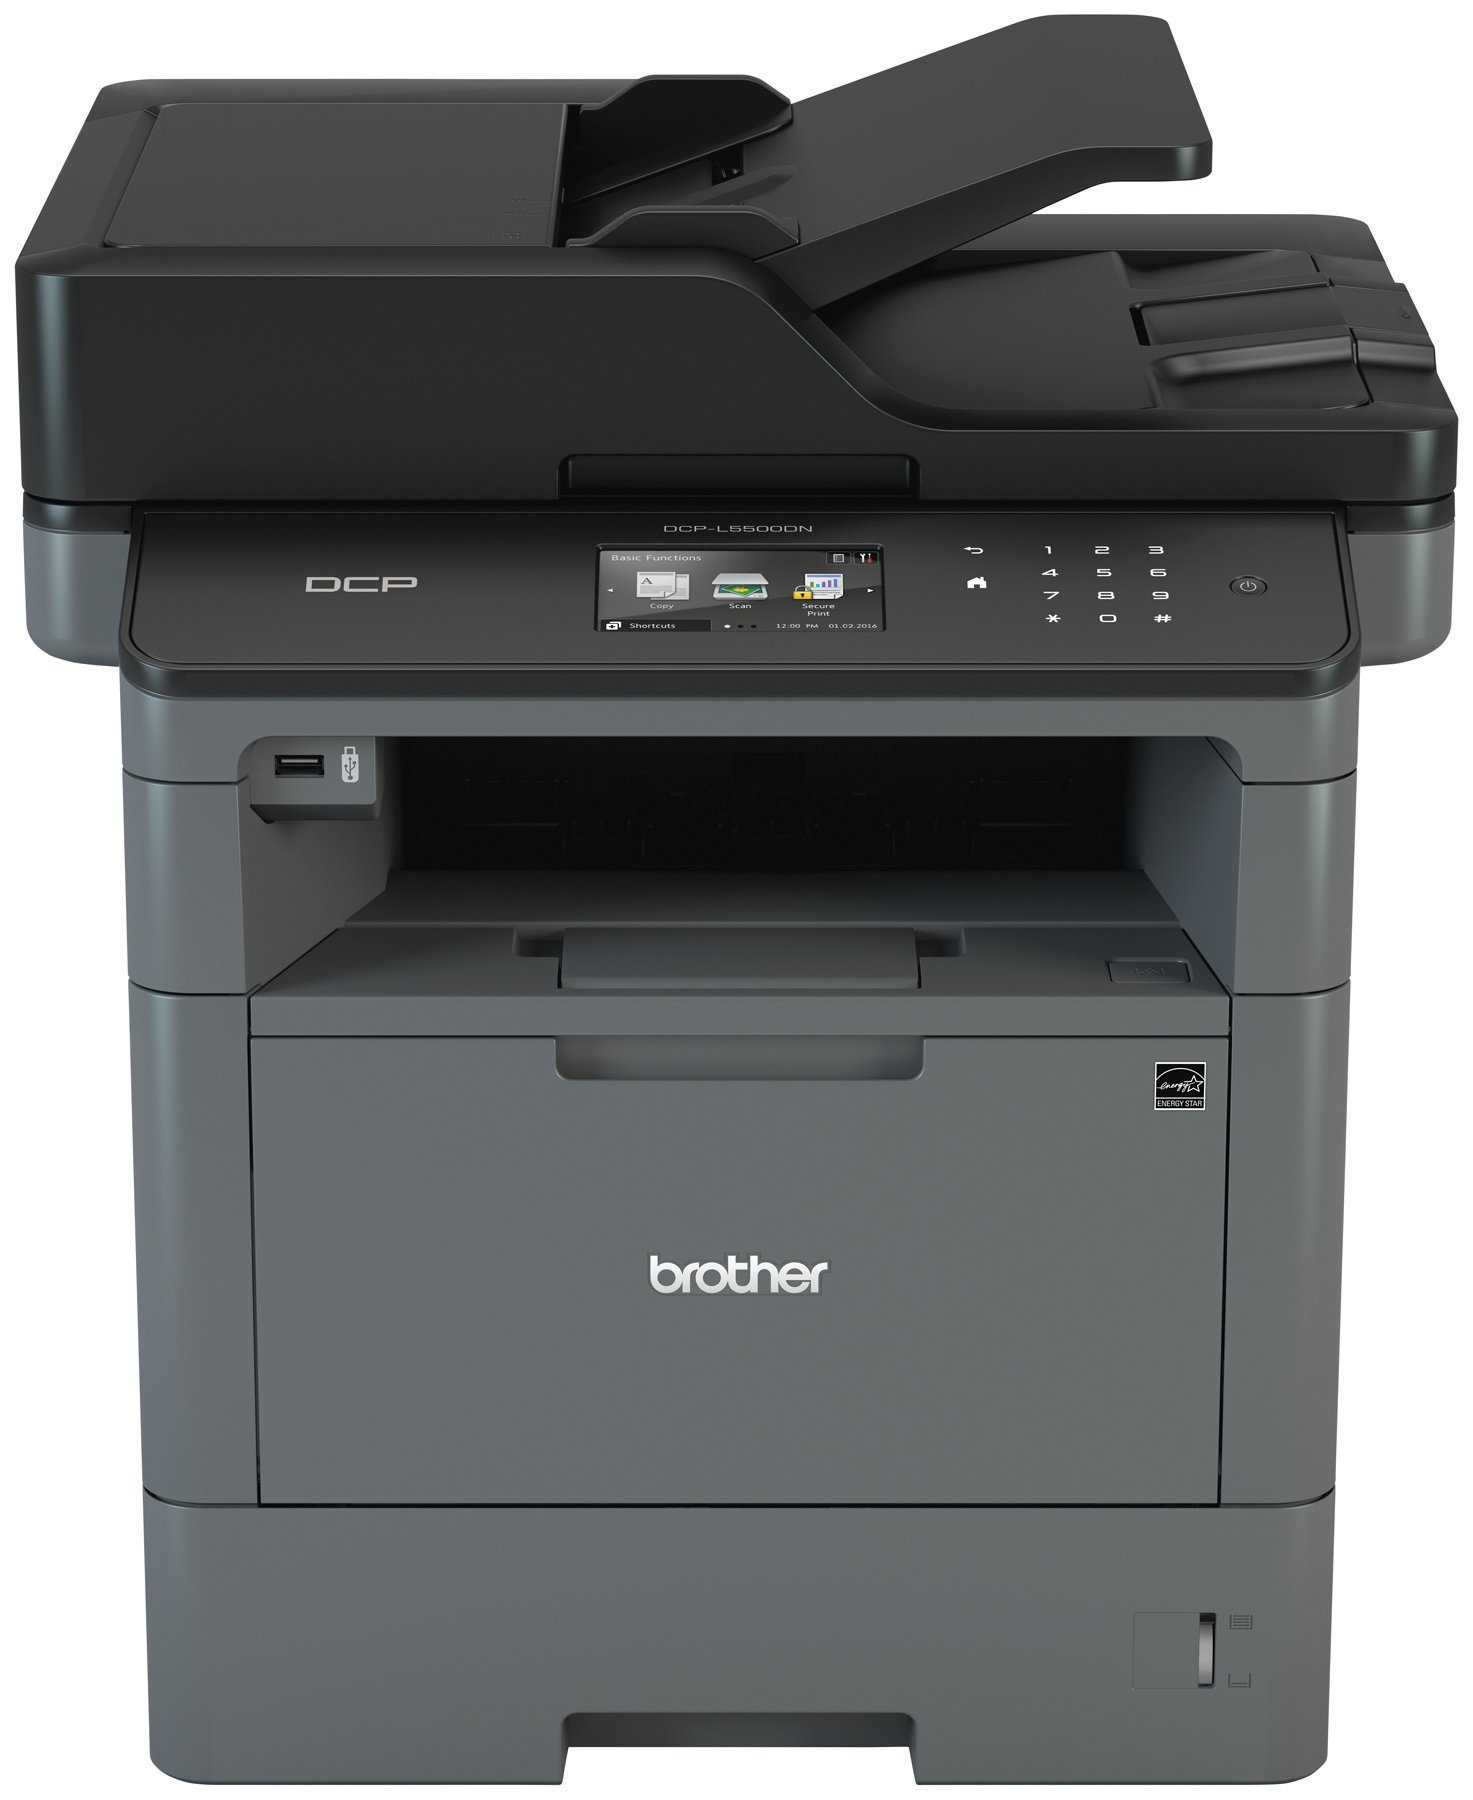 Brother Monochrome Laser Printer, Multifunction Printer and Copier, DCP-L5500DN, Flexible Network Connectivity, Duplex Printing, Mobile Printing & Scanning, Amazon Dash Replenishment Enabled by Brother